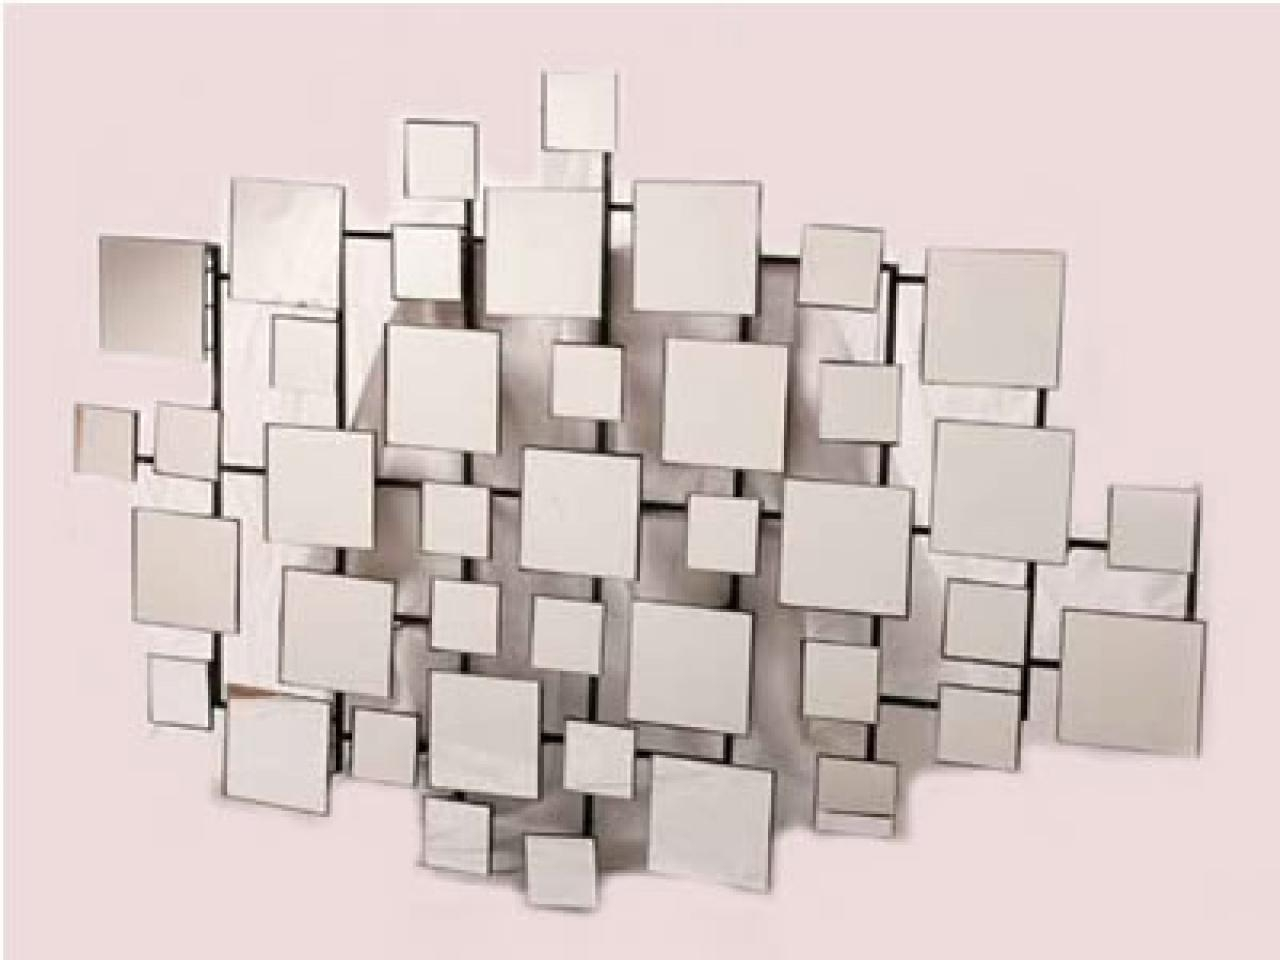 Wall Art Designs: Mirrored Wall Art Geometric Mirror Wall Art Pertaining To Modern Mirror Wall Art (View 4 of 20)